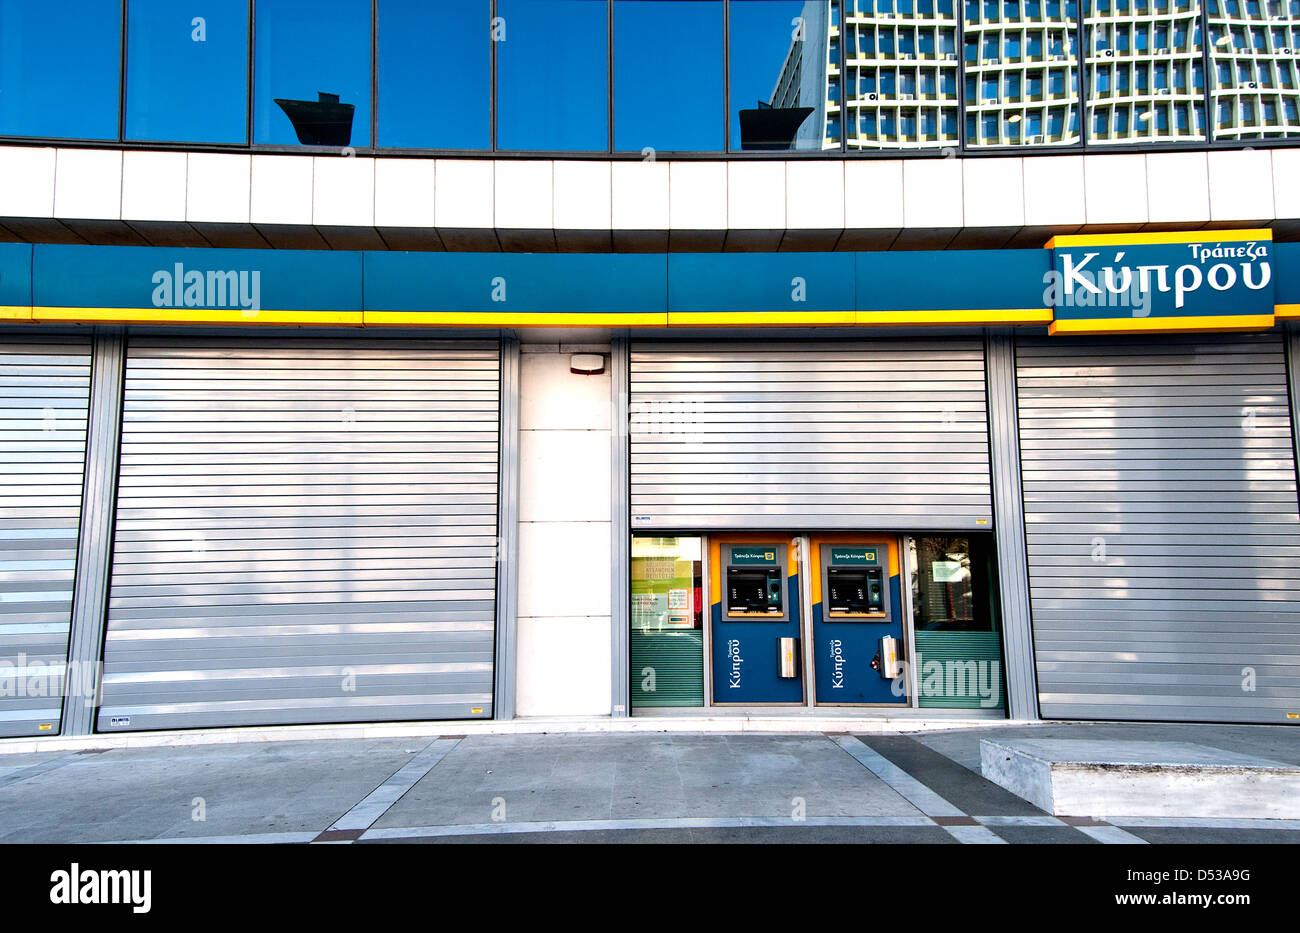 Bank of Cyprus (Cyprus bank) closed for days as result of the crisis in the banking sector, March 2013 - Stock Image